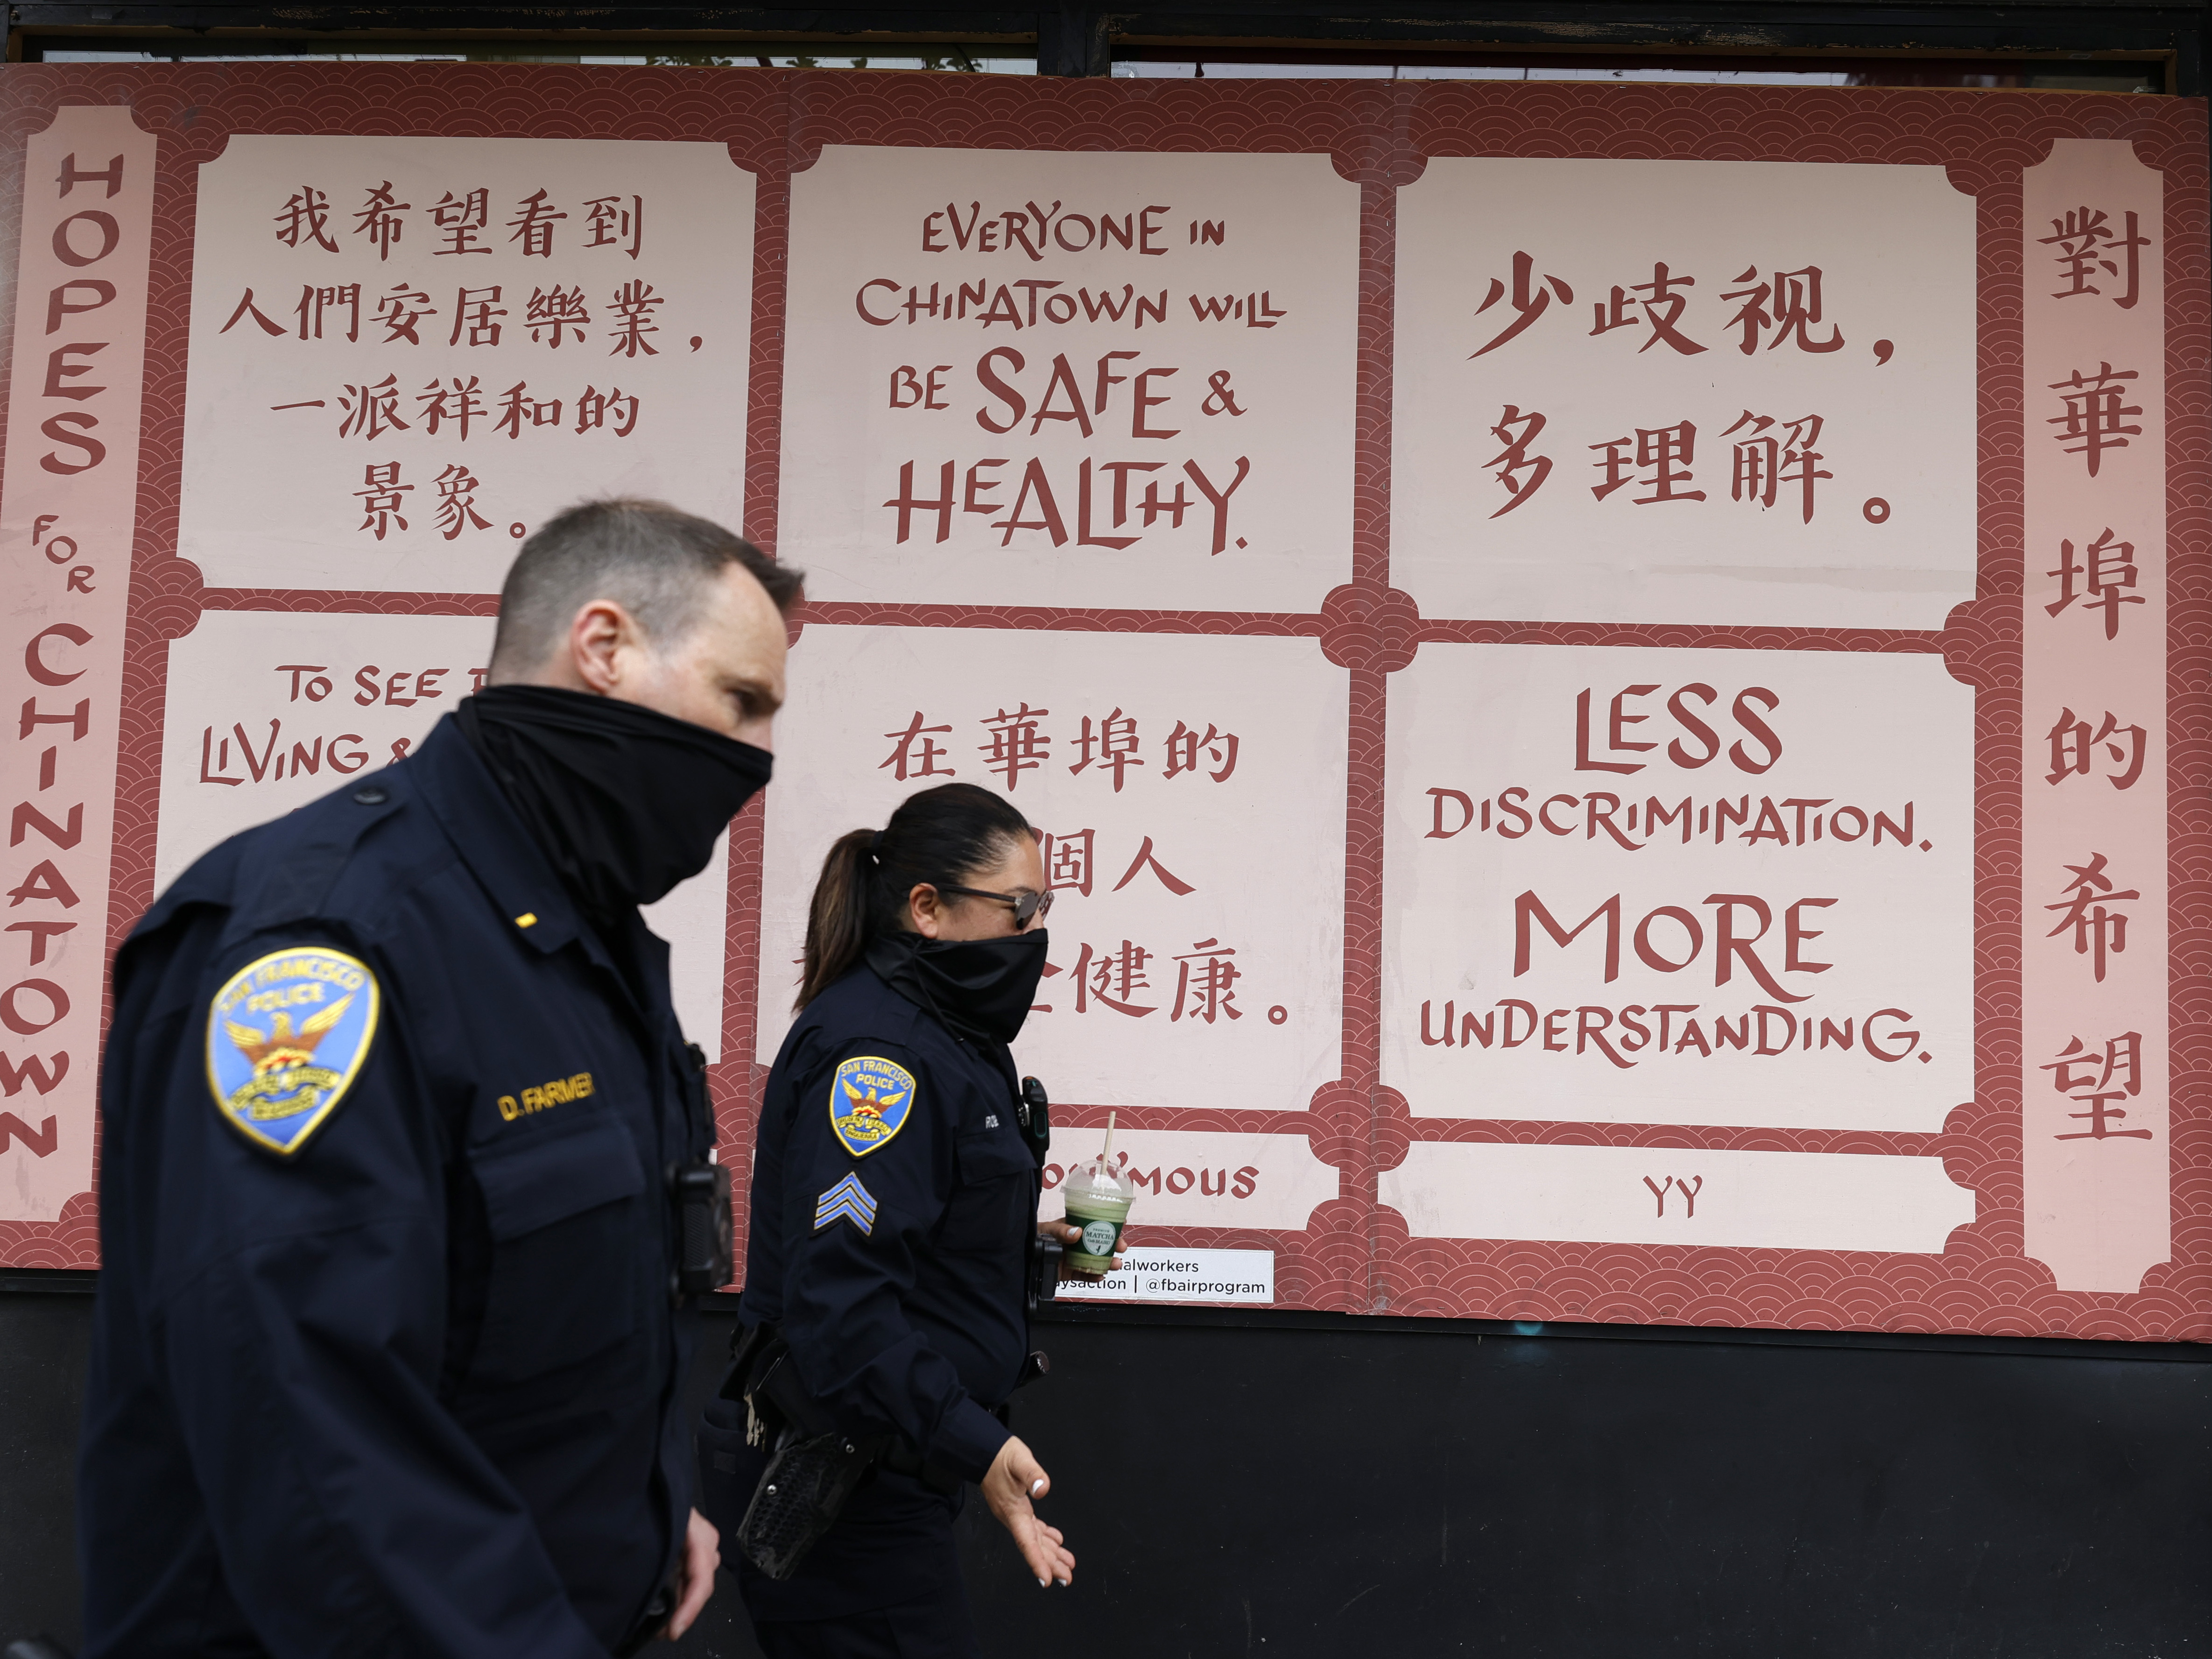 www.ideastream.org: On Capitol Hill, Asian American Leaders To Voice 'Very Real' Fear In Community